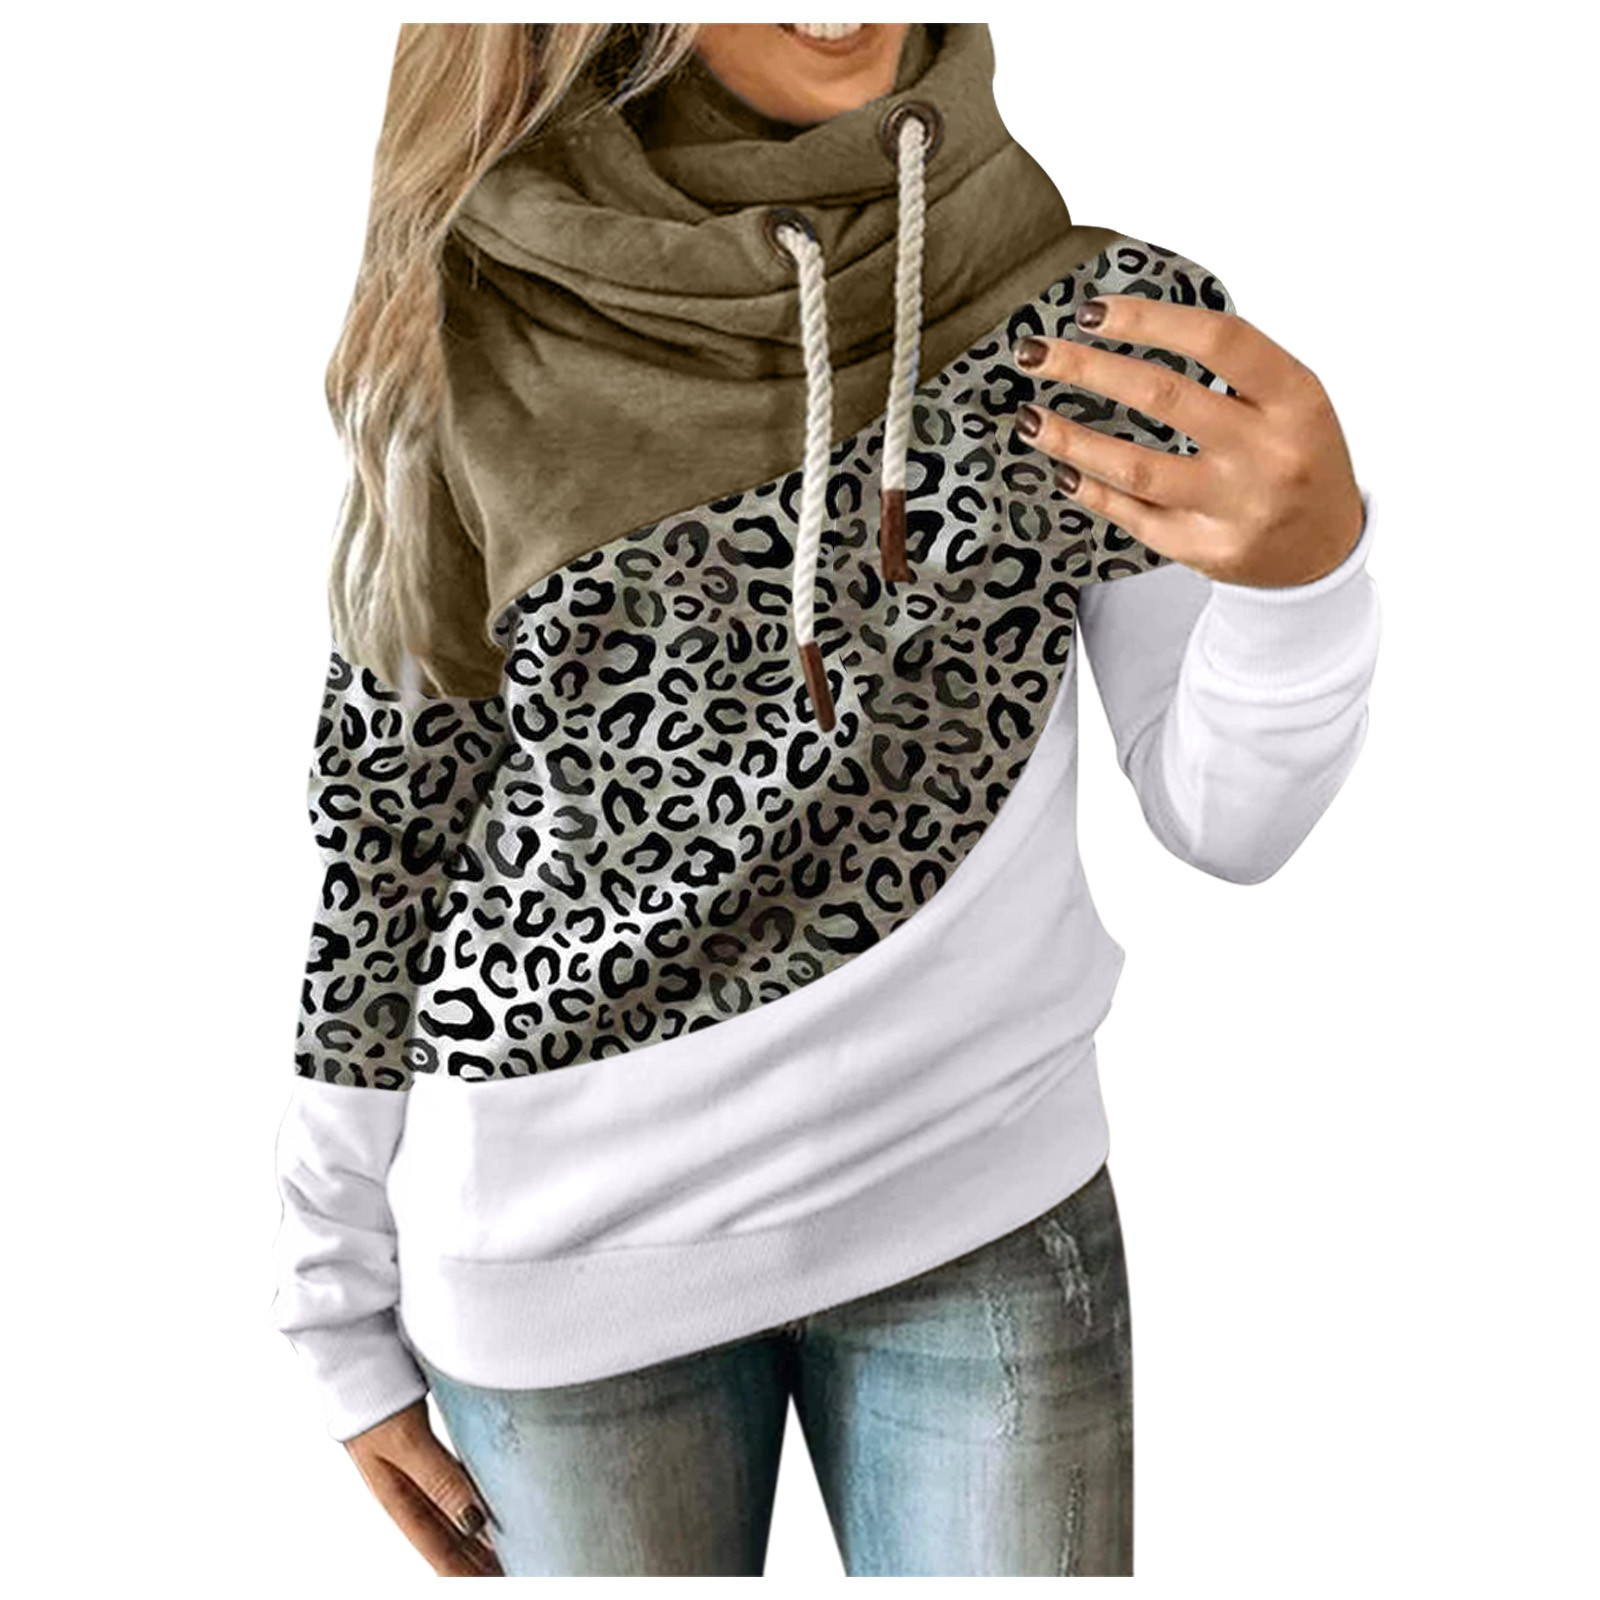 Hot Sale Women Casual Solid Contrast Long Sleeve Hoodie Sweatshirt Patchwork Printed Tops Sudaderas Mujer 2020 F Fast Ship 13